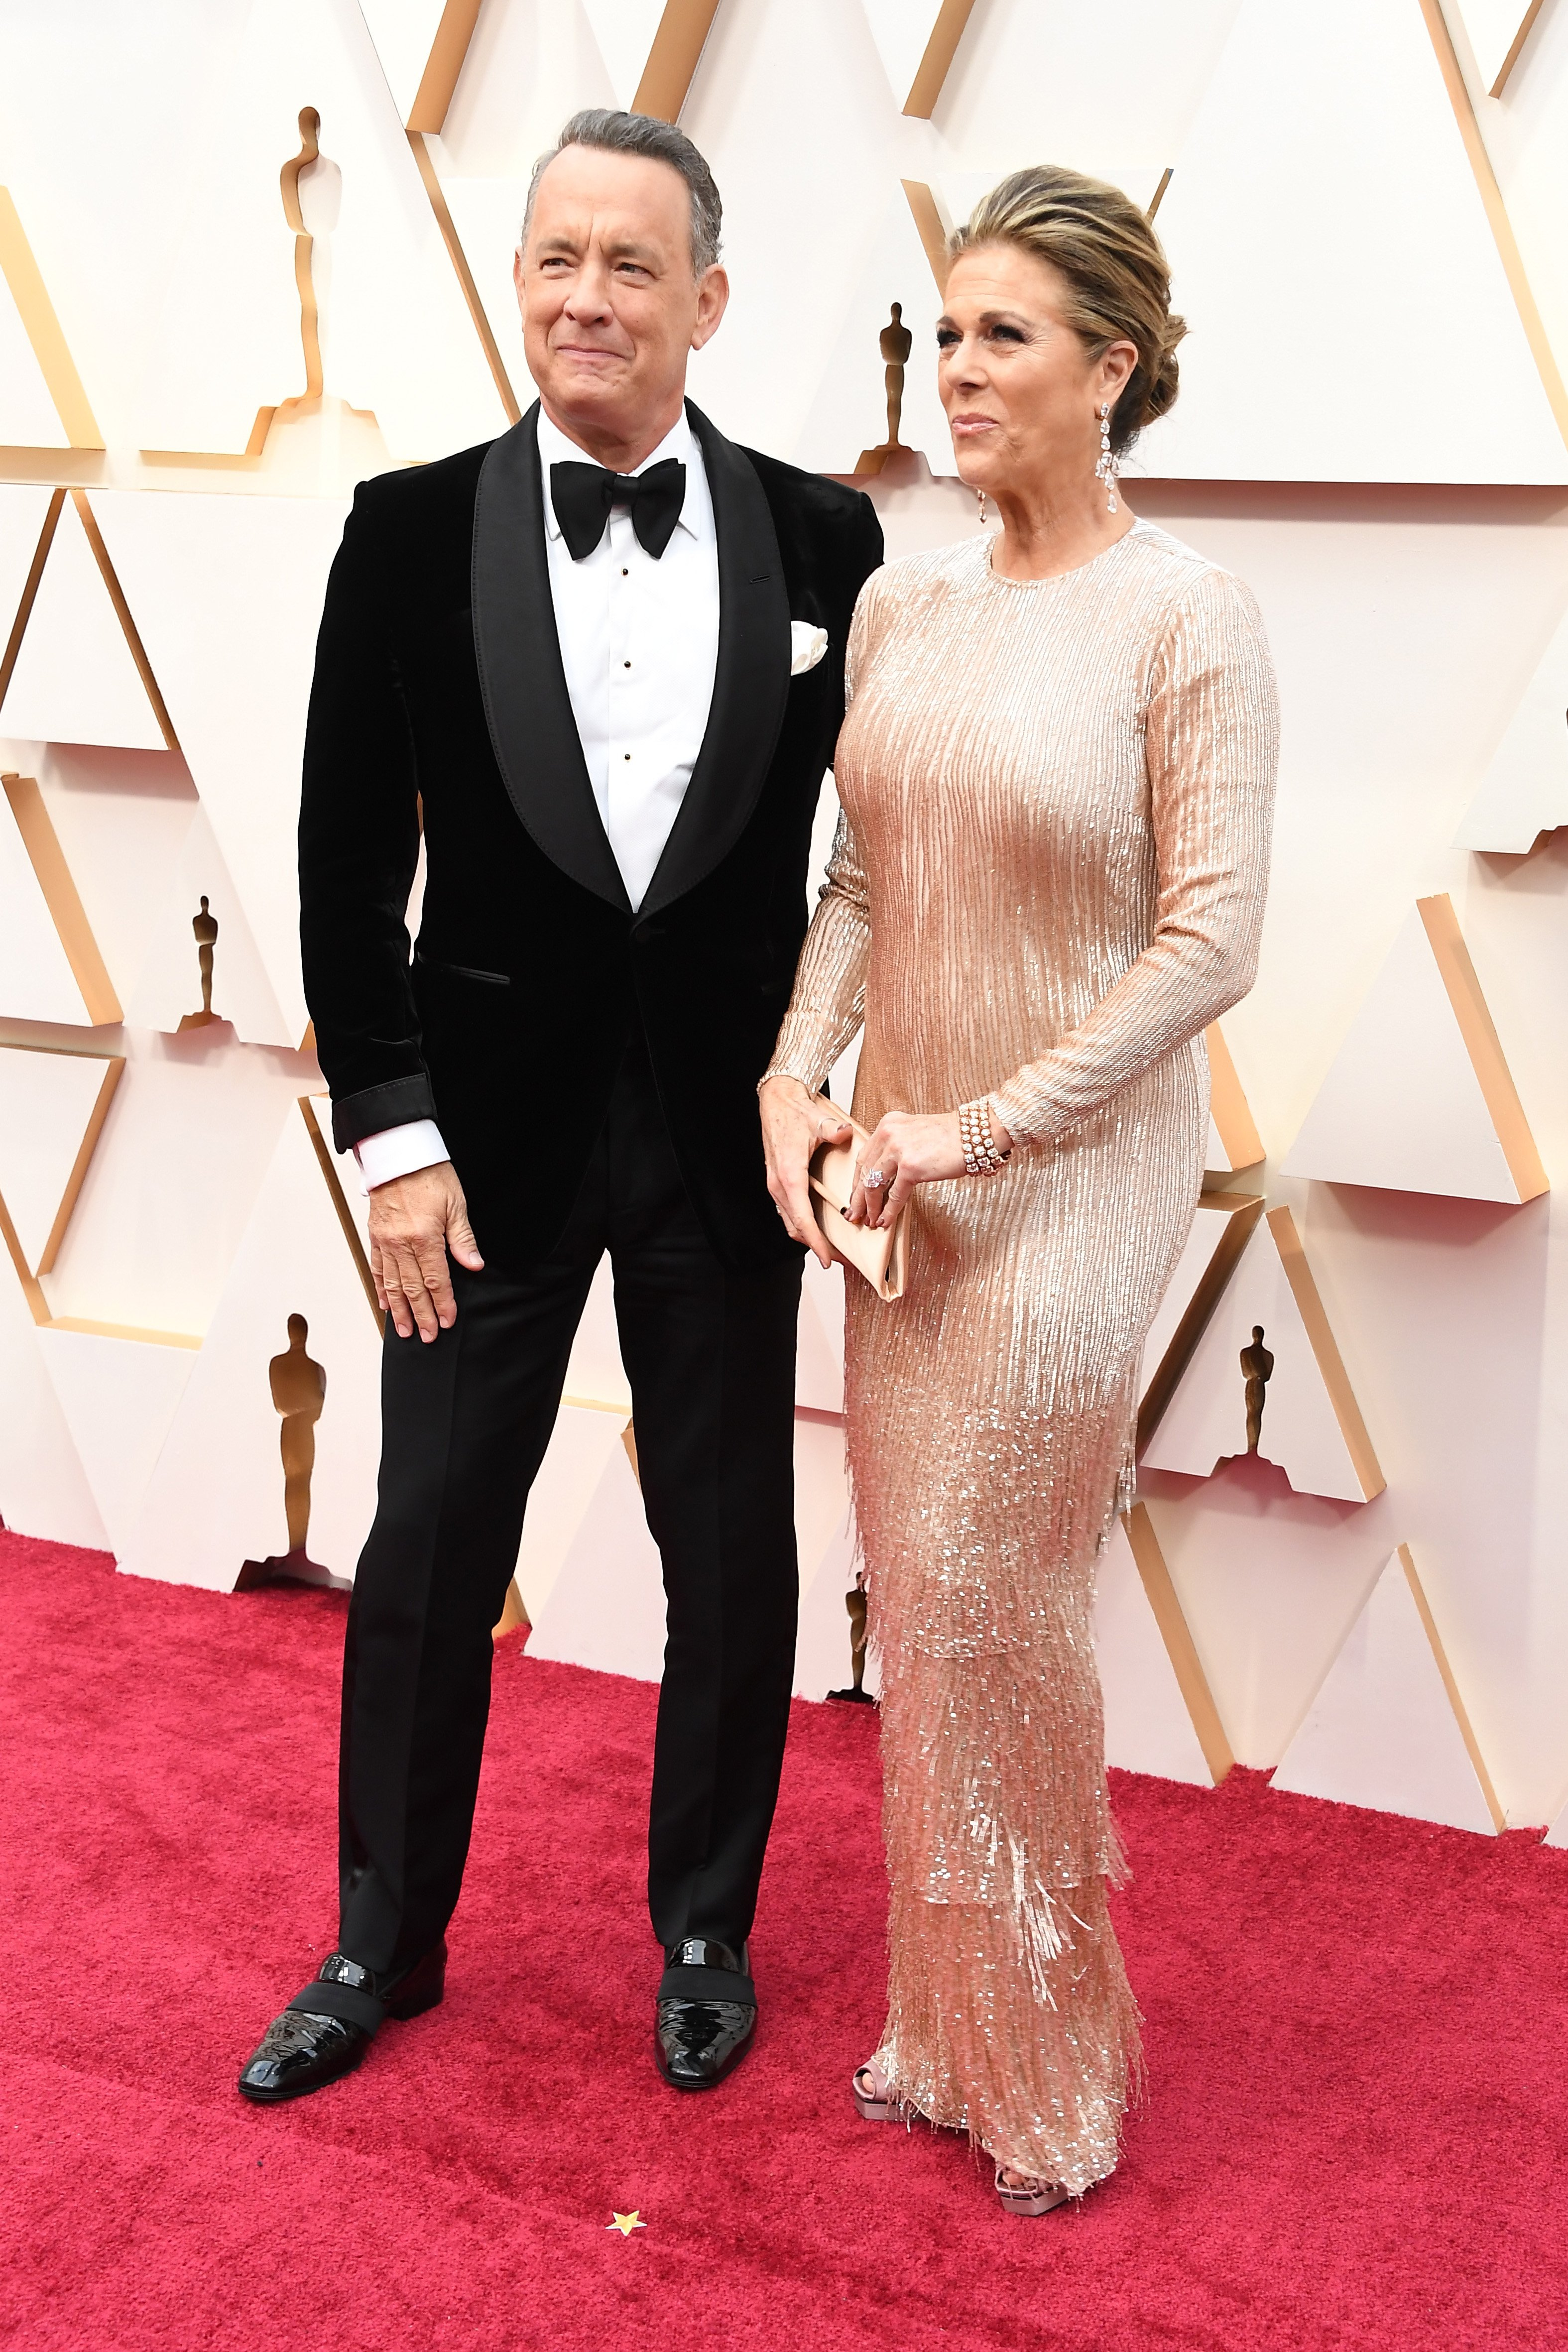 Tom Hanks and Rita Wilson arriving at the 92nd Academy Awards on Sunday, February 9, 2020 at the Dolby Theatre at Hollywood & Highland Center in Hollywood, CA. | Source: Getty Images